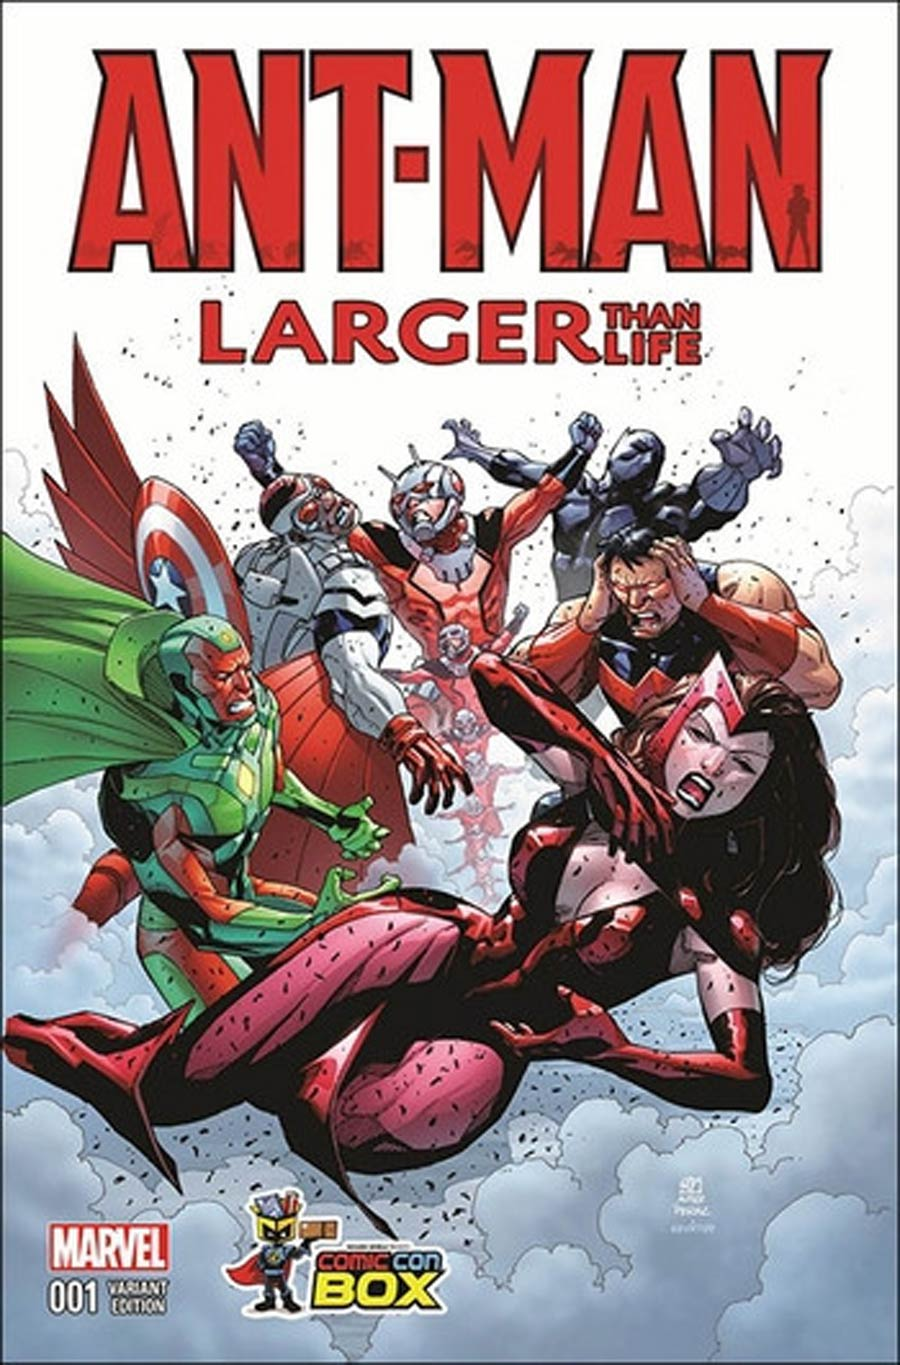 Ant-Man Larger Than Life #1 Cover B Wizard World Comic Con Box Color Variant Cover Khoi Pham